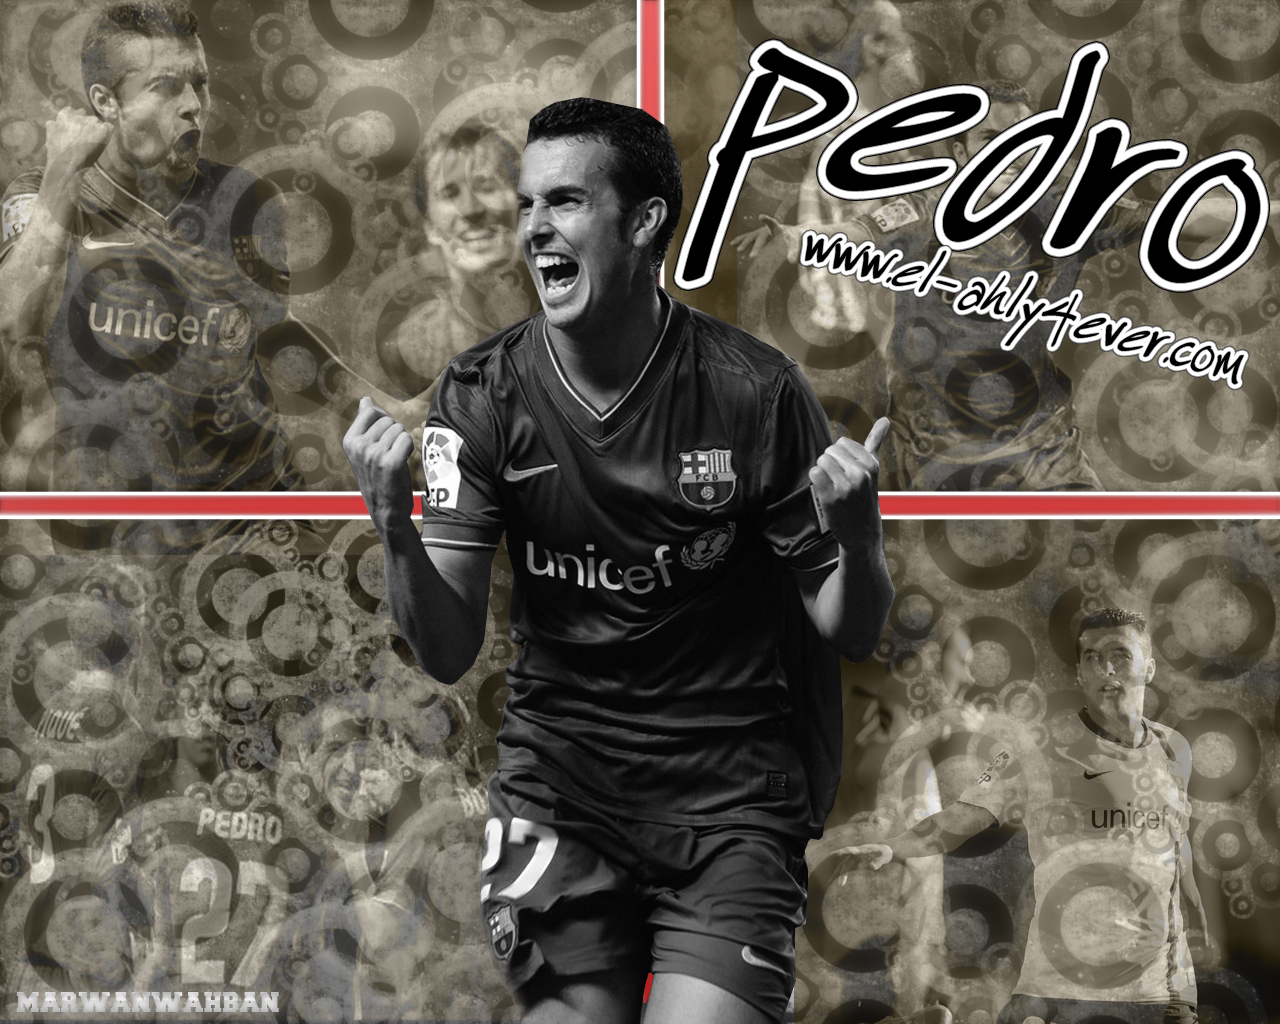 Pedro Football Wallpaper